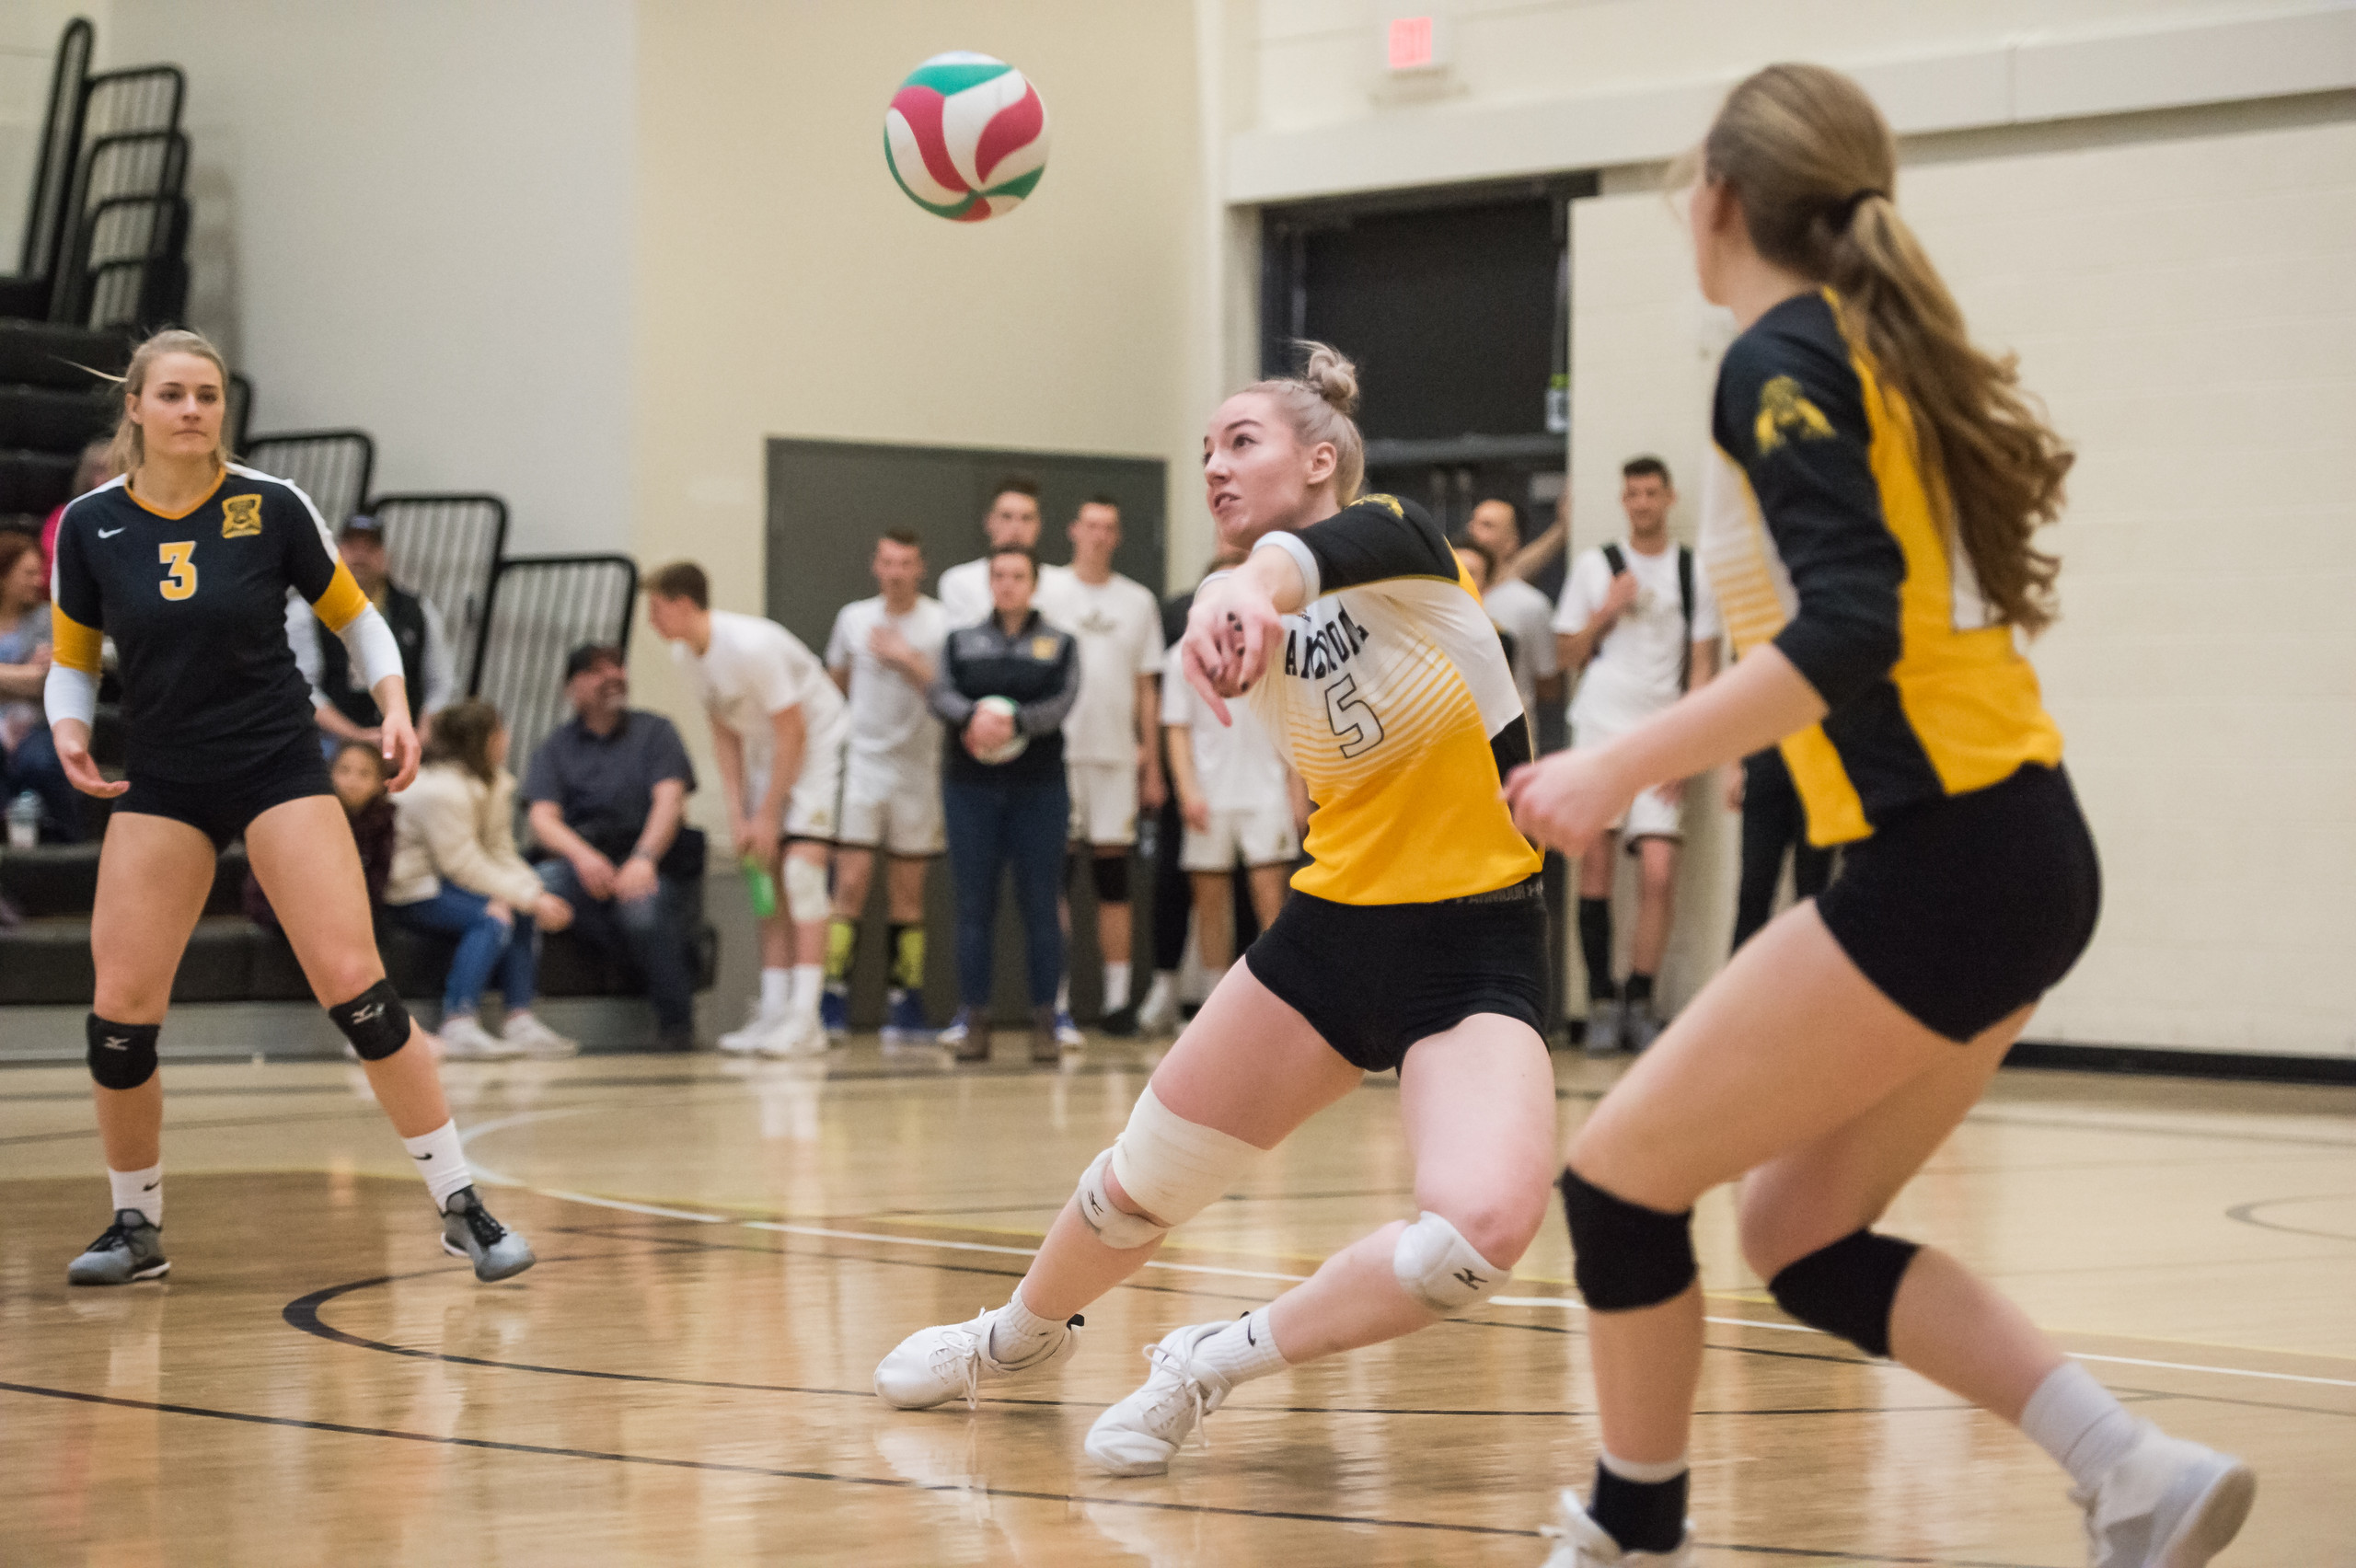 Ambrose Lions Volleyball game